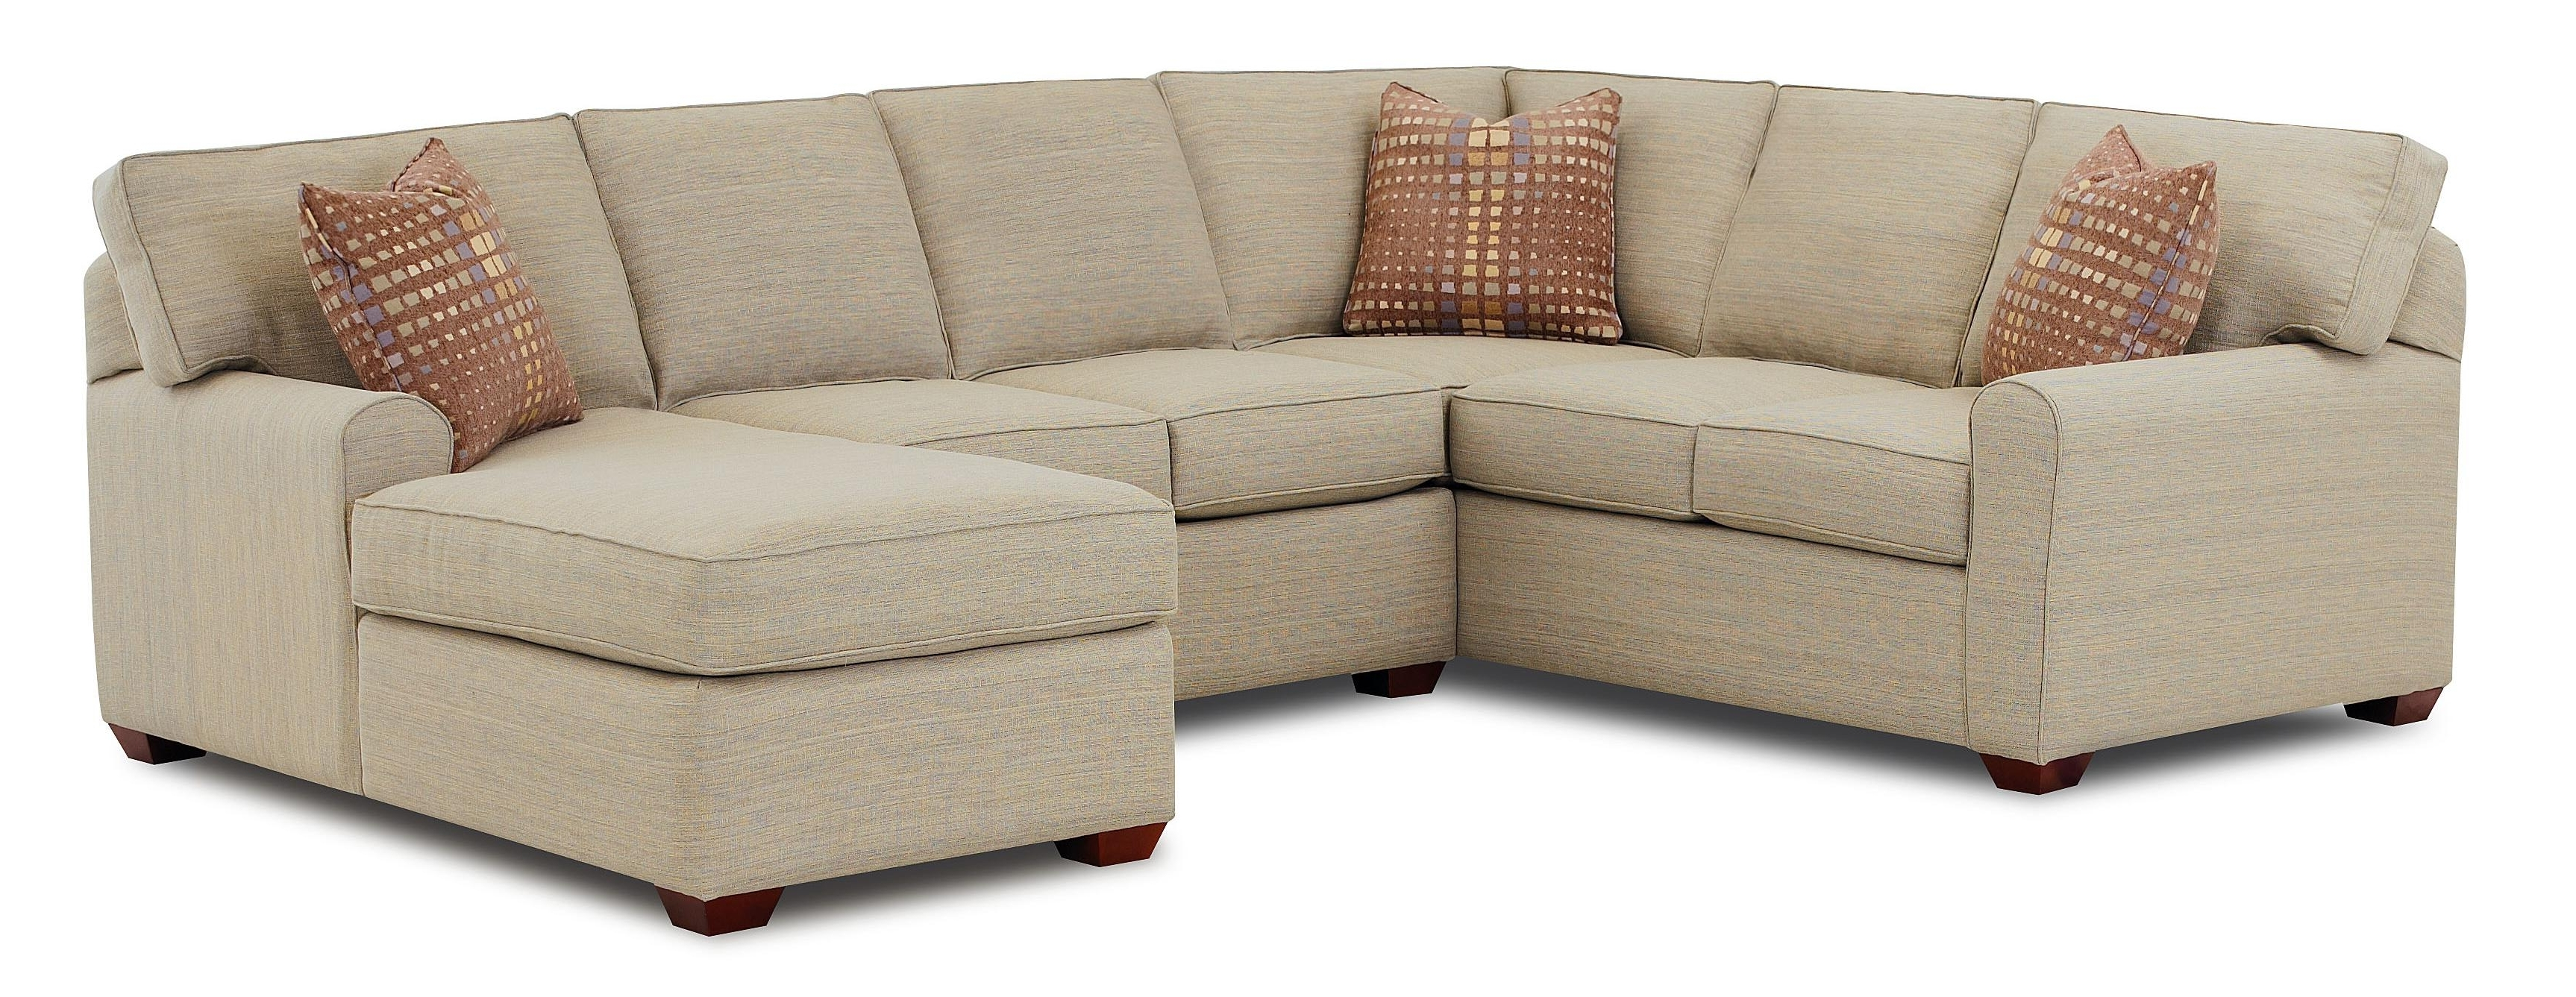 Well Known Sectional Sofa With Right Facing Chaise Loungeklaussner (View 12 of 15)